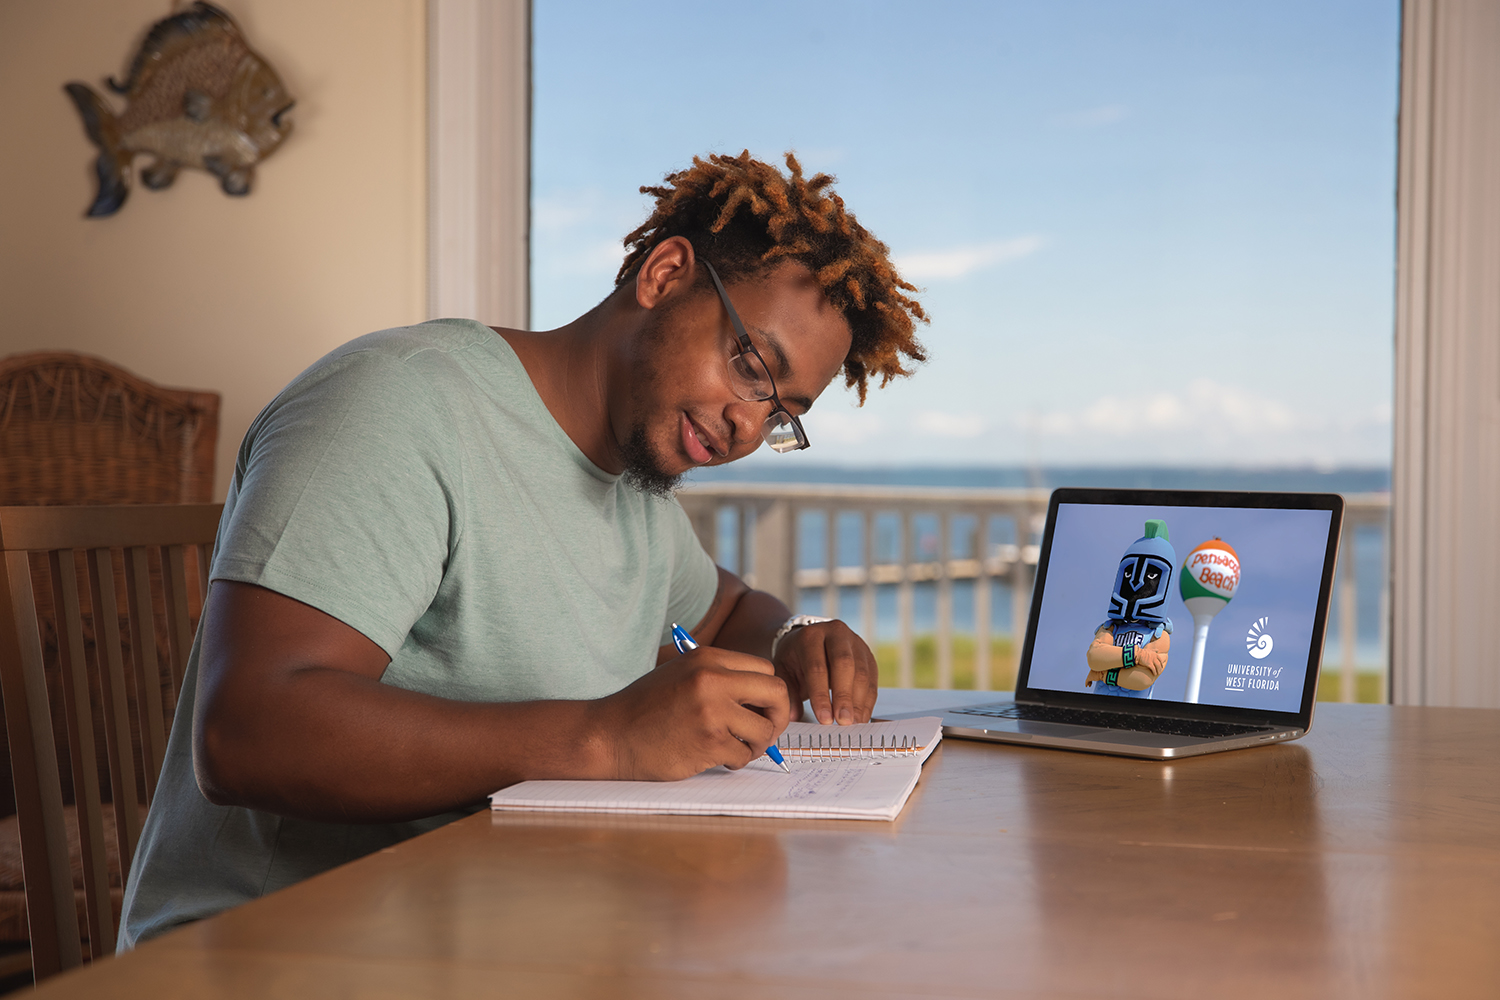 A UWF student takes advantage of online education by taking classes online at a beach house on Pensacola Beach on June 5, 2020.